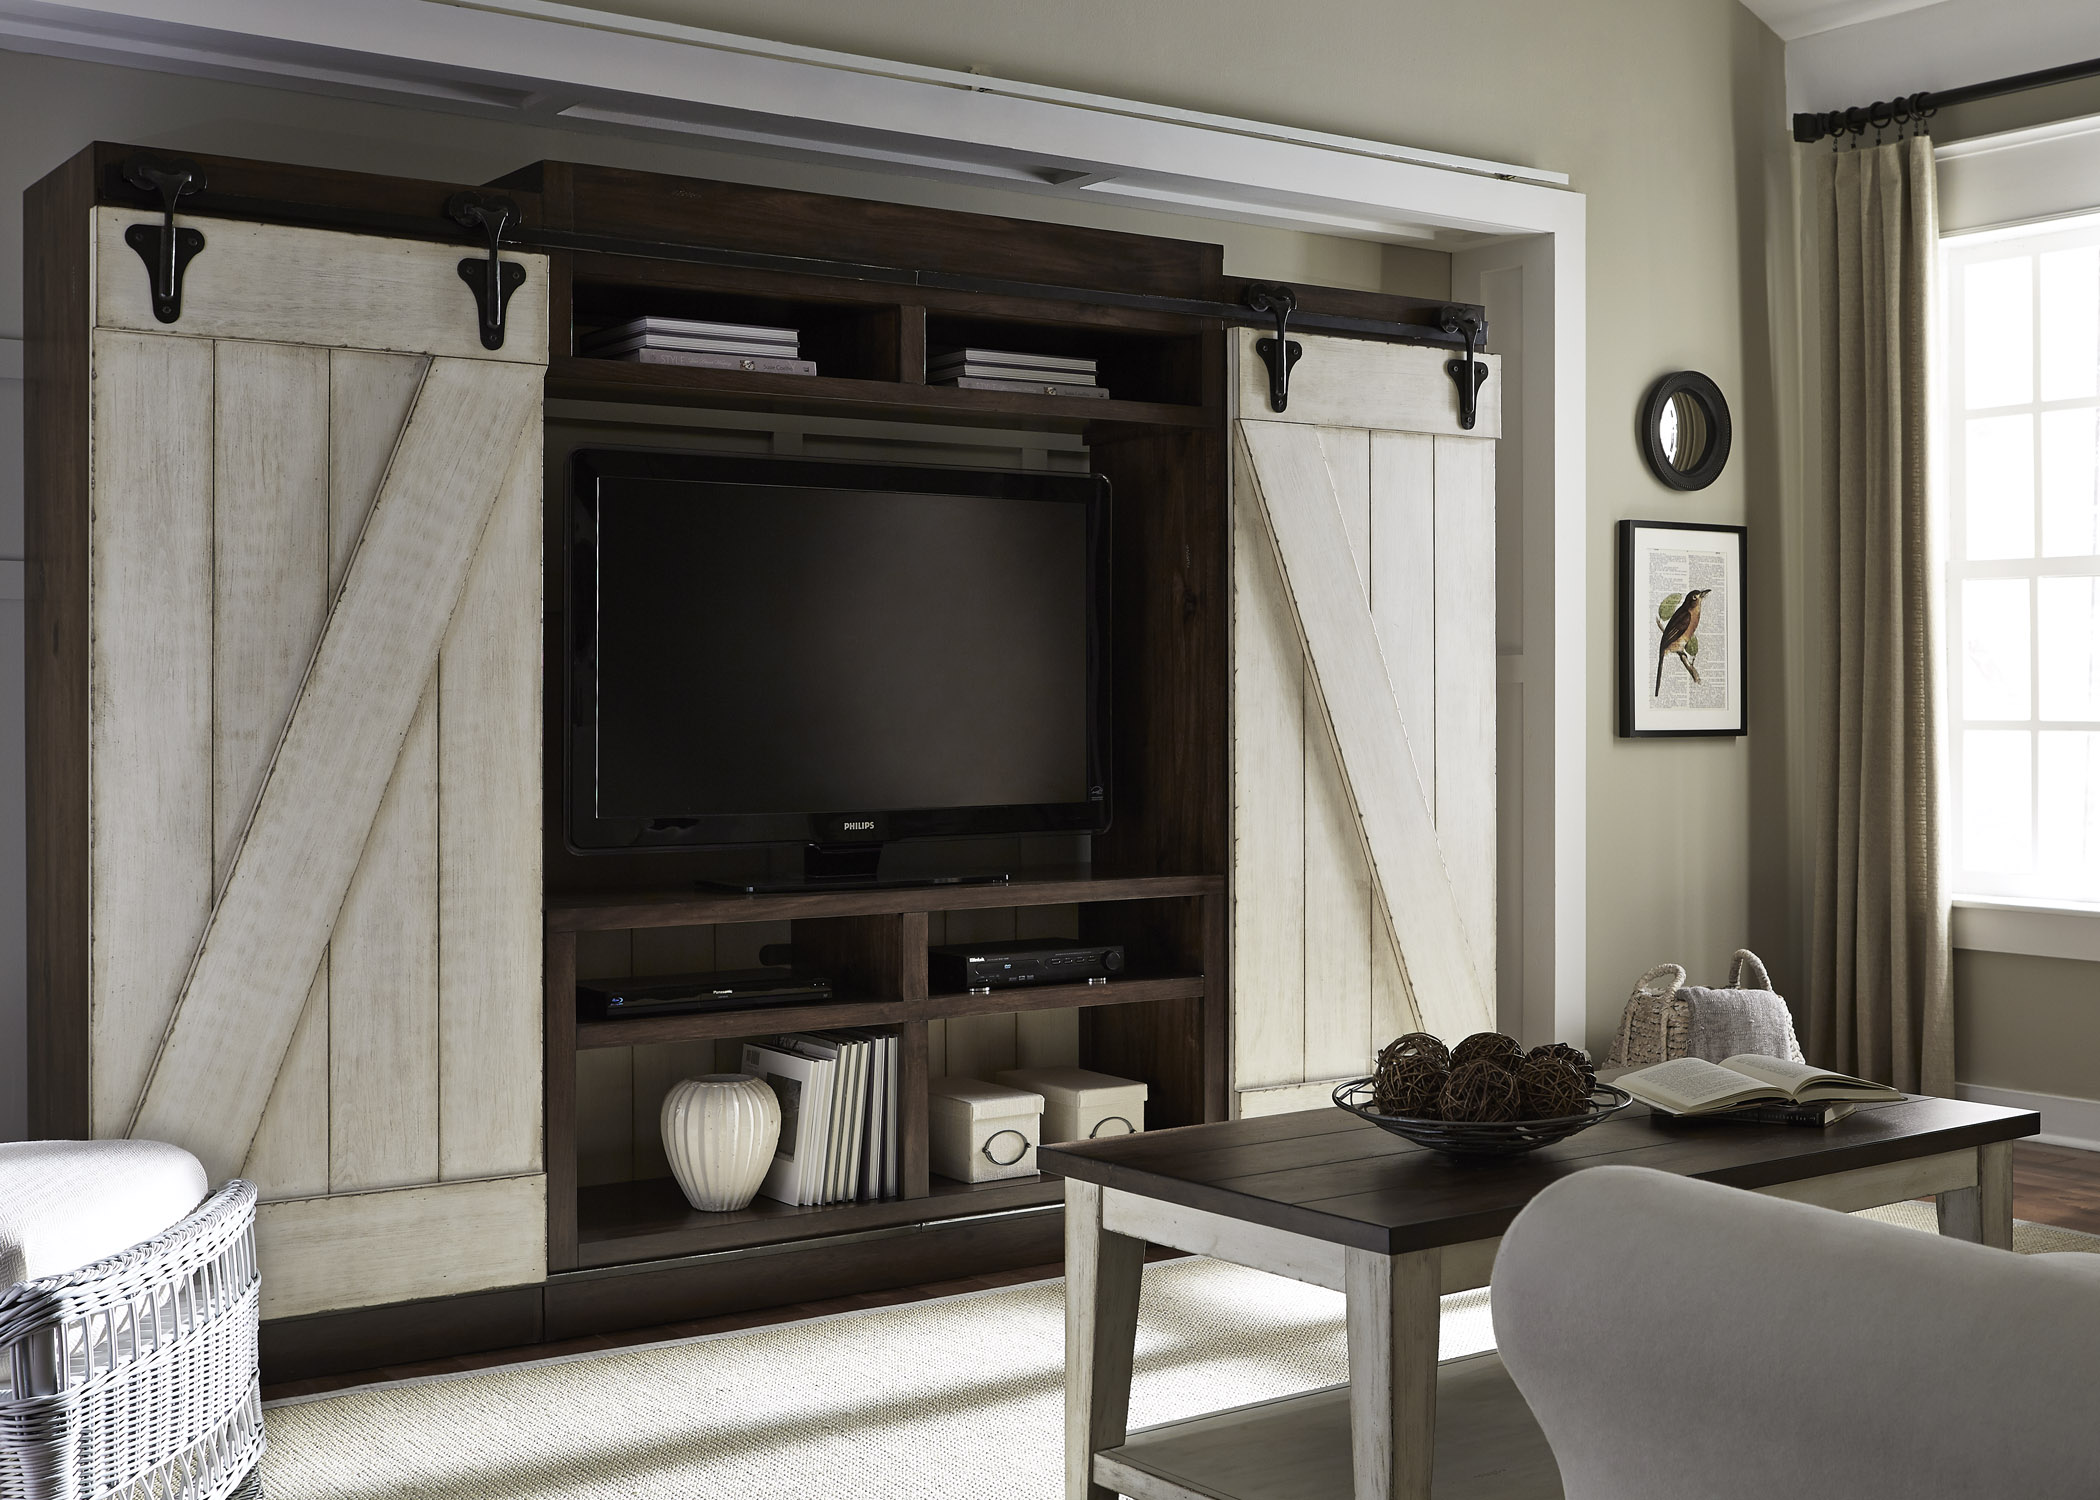 Lancaster Entertainment Center with Piers by Libby at Walker's Furniture